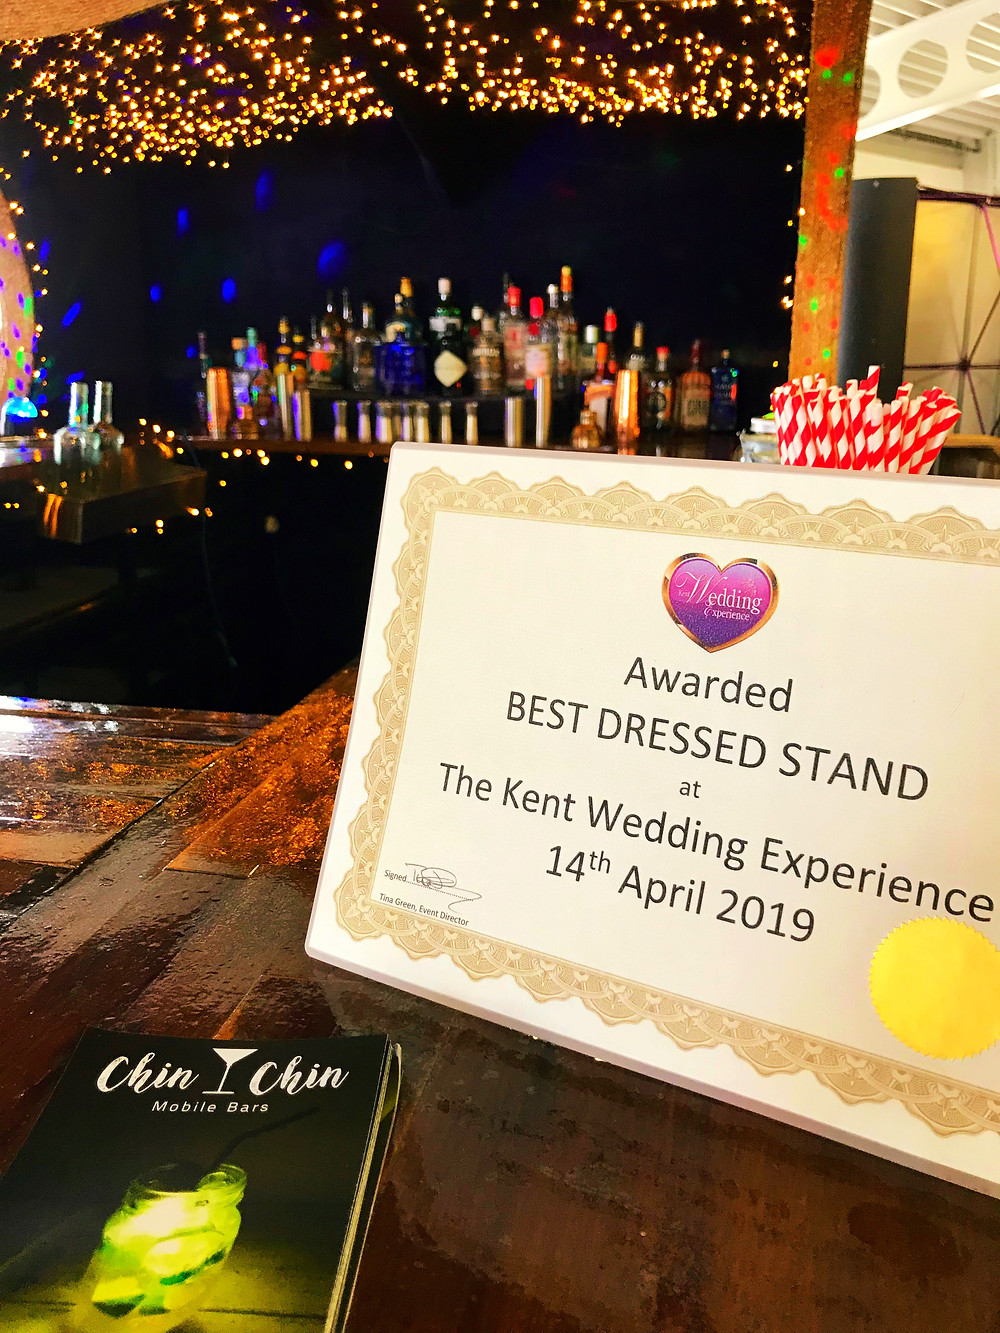 Chin Chin Mobile Bars wins Best Dressed Stand Award at the Kent Wedding Experience Show in Detling